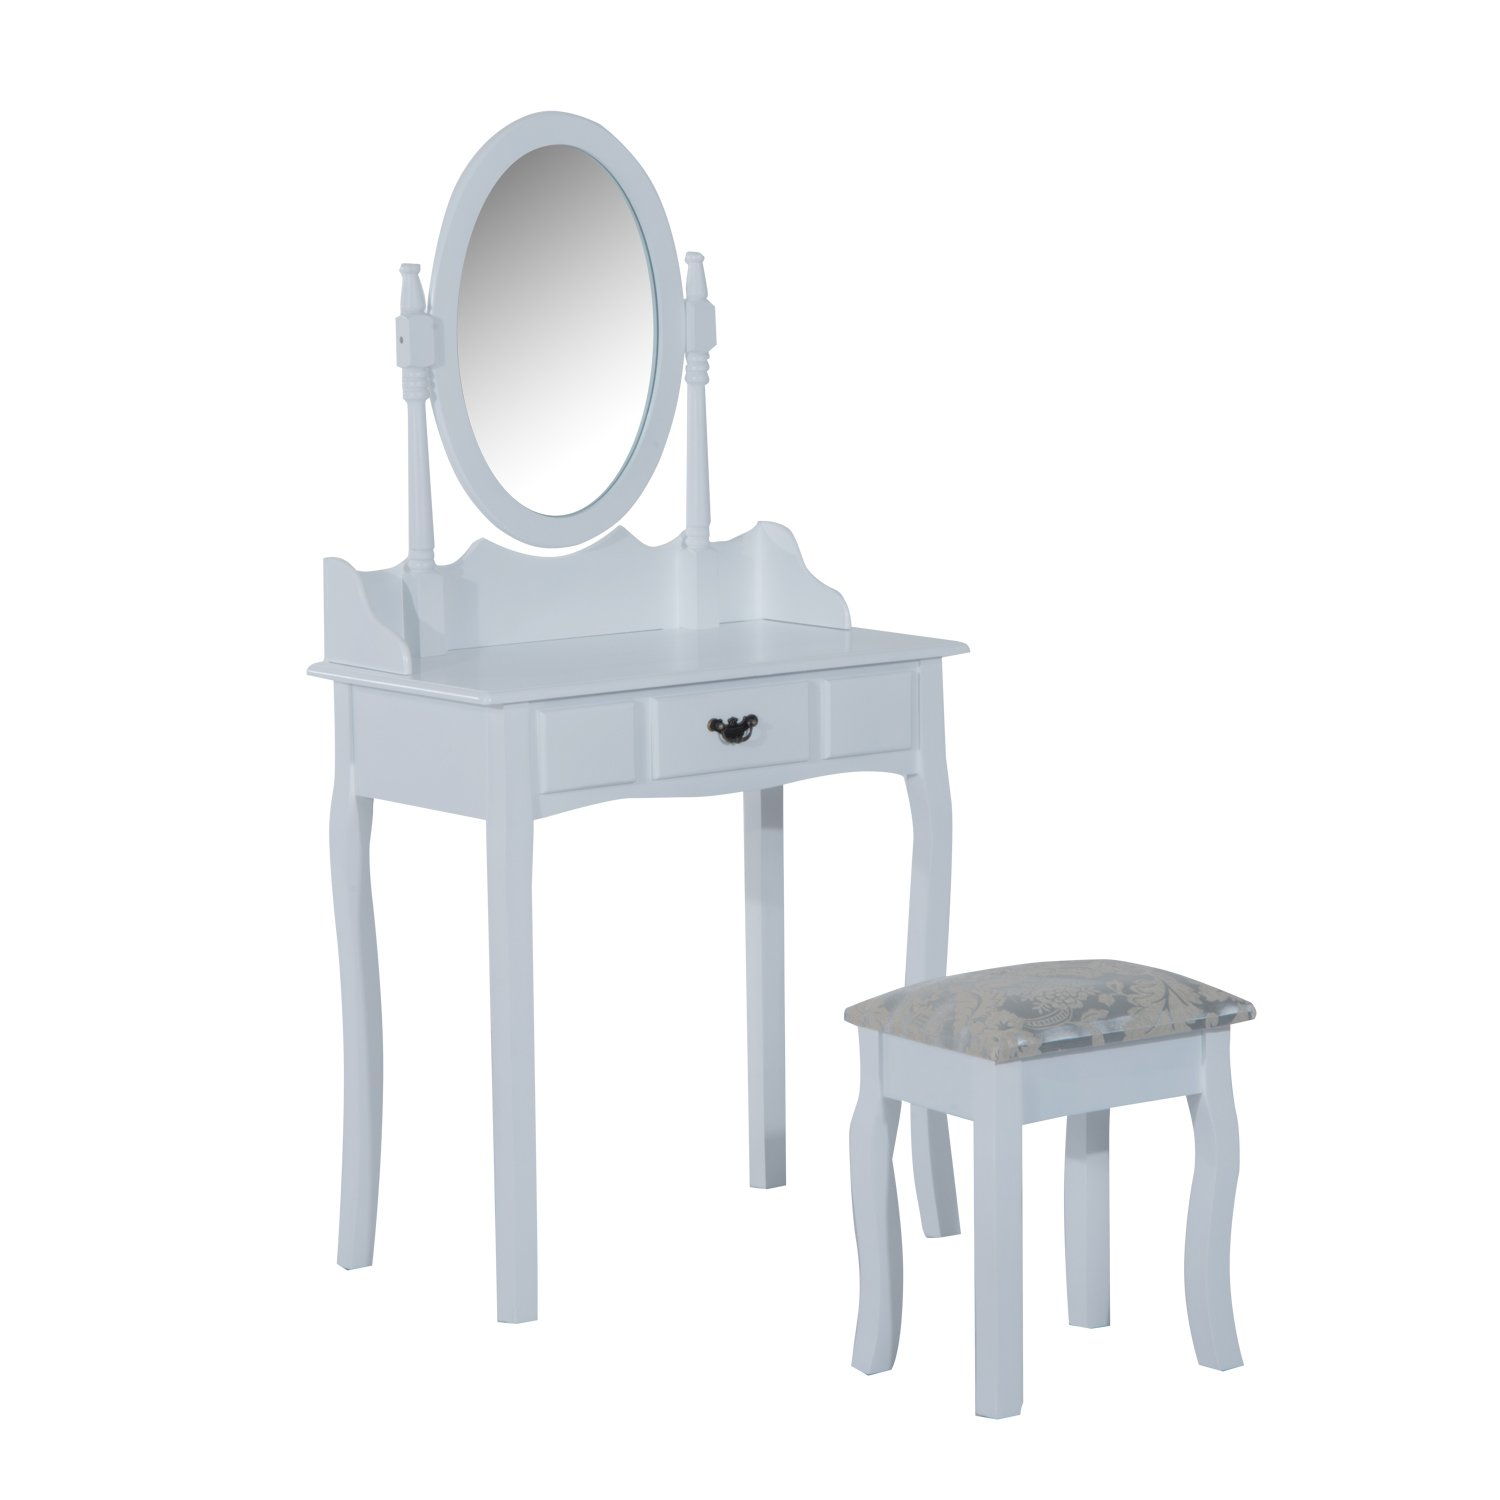 HOMCOM Vanity Table Set Oval Mirror Makeup Dressing Table with Cushioned Stool Bedroom Furniture White Aosom Canada